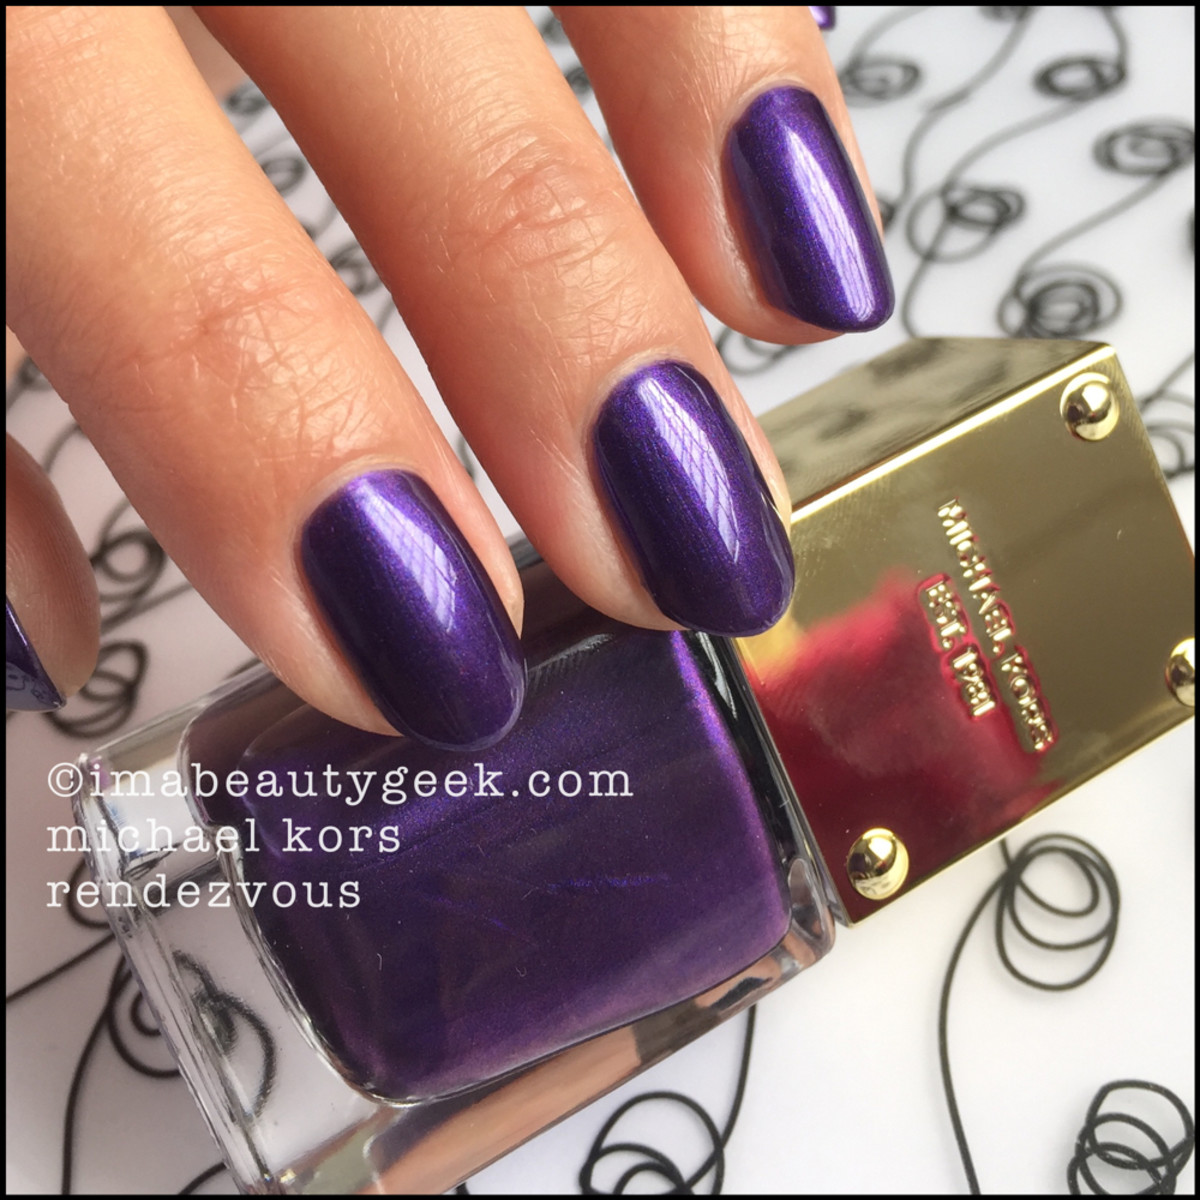 Michael Kors Rendezvous Nail Polish Swatch Beautygeeks